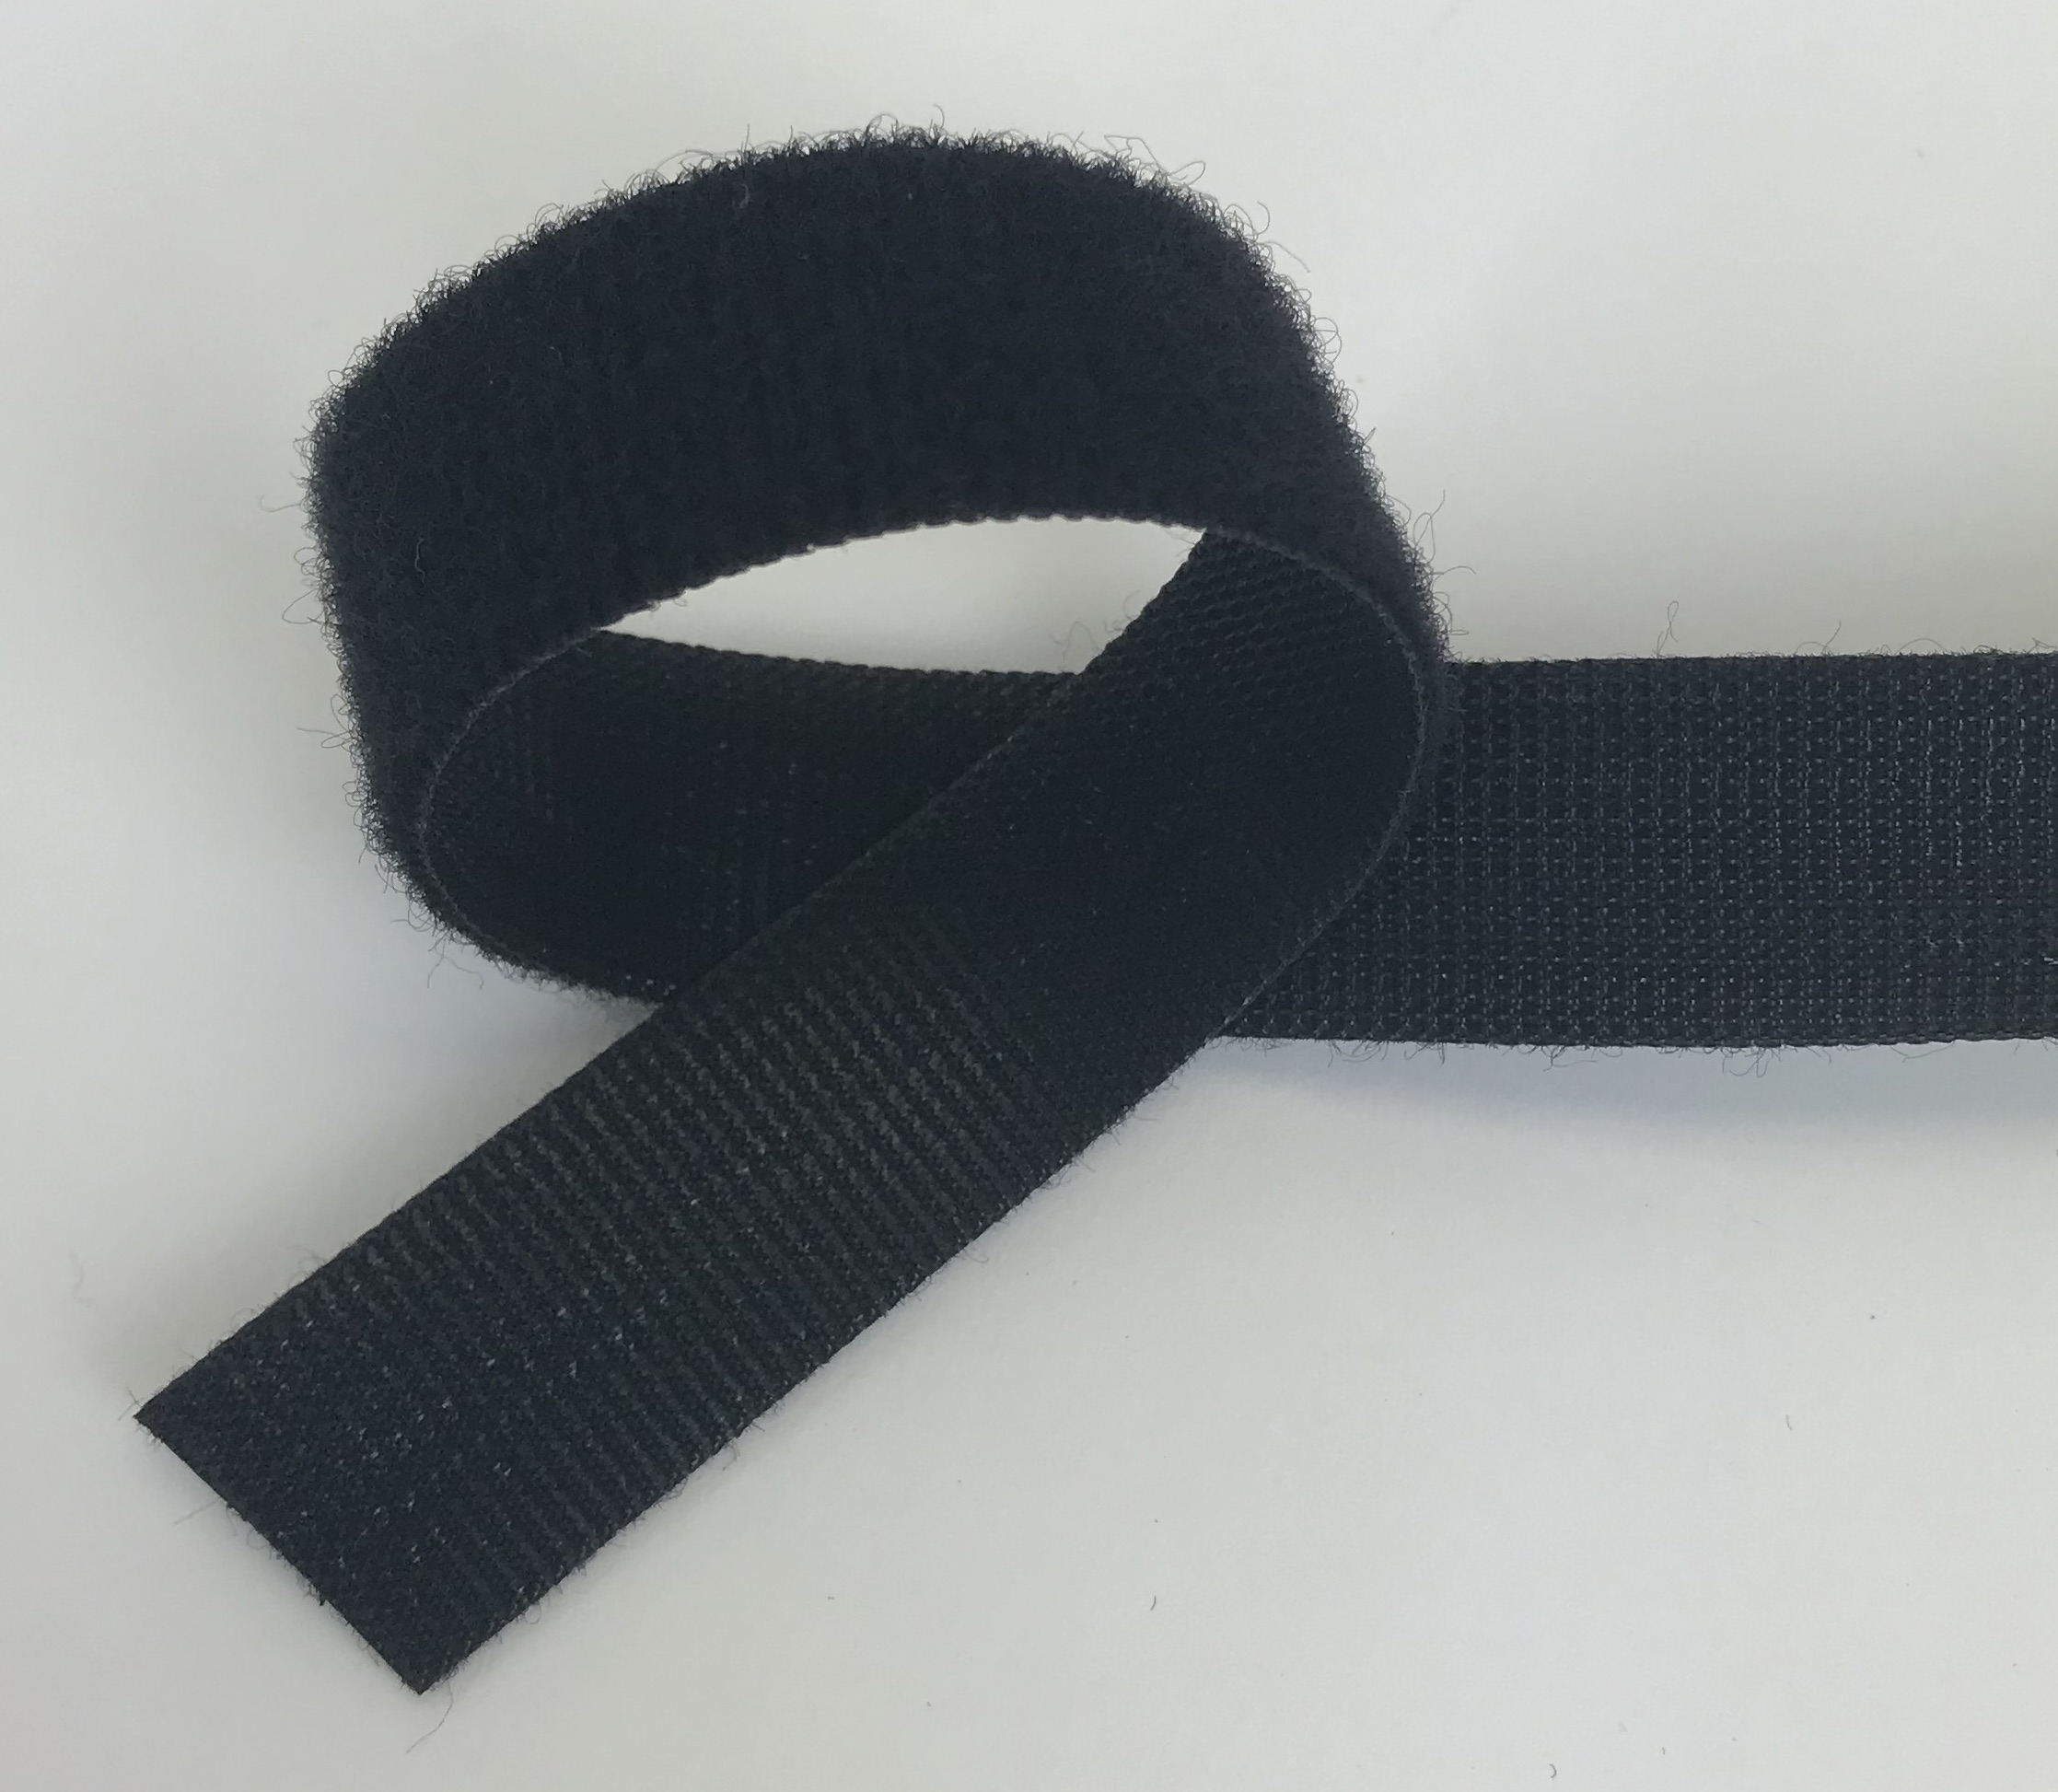 Velcro Strapping for TWG Intake Screens 3/4